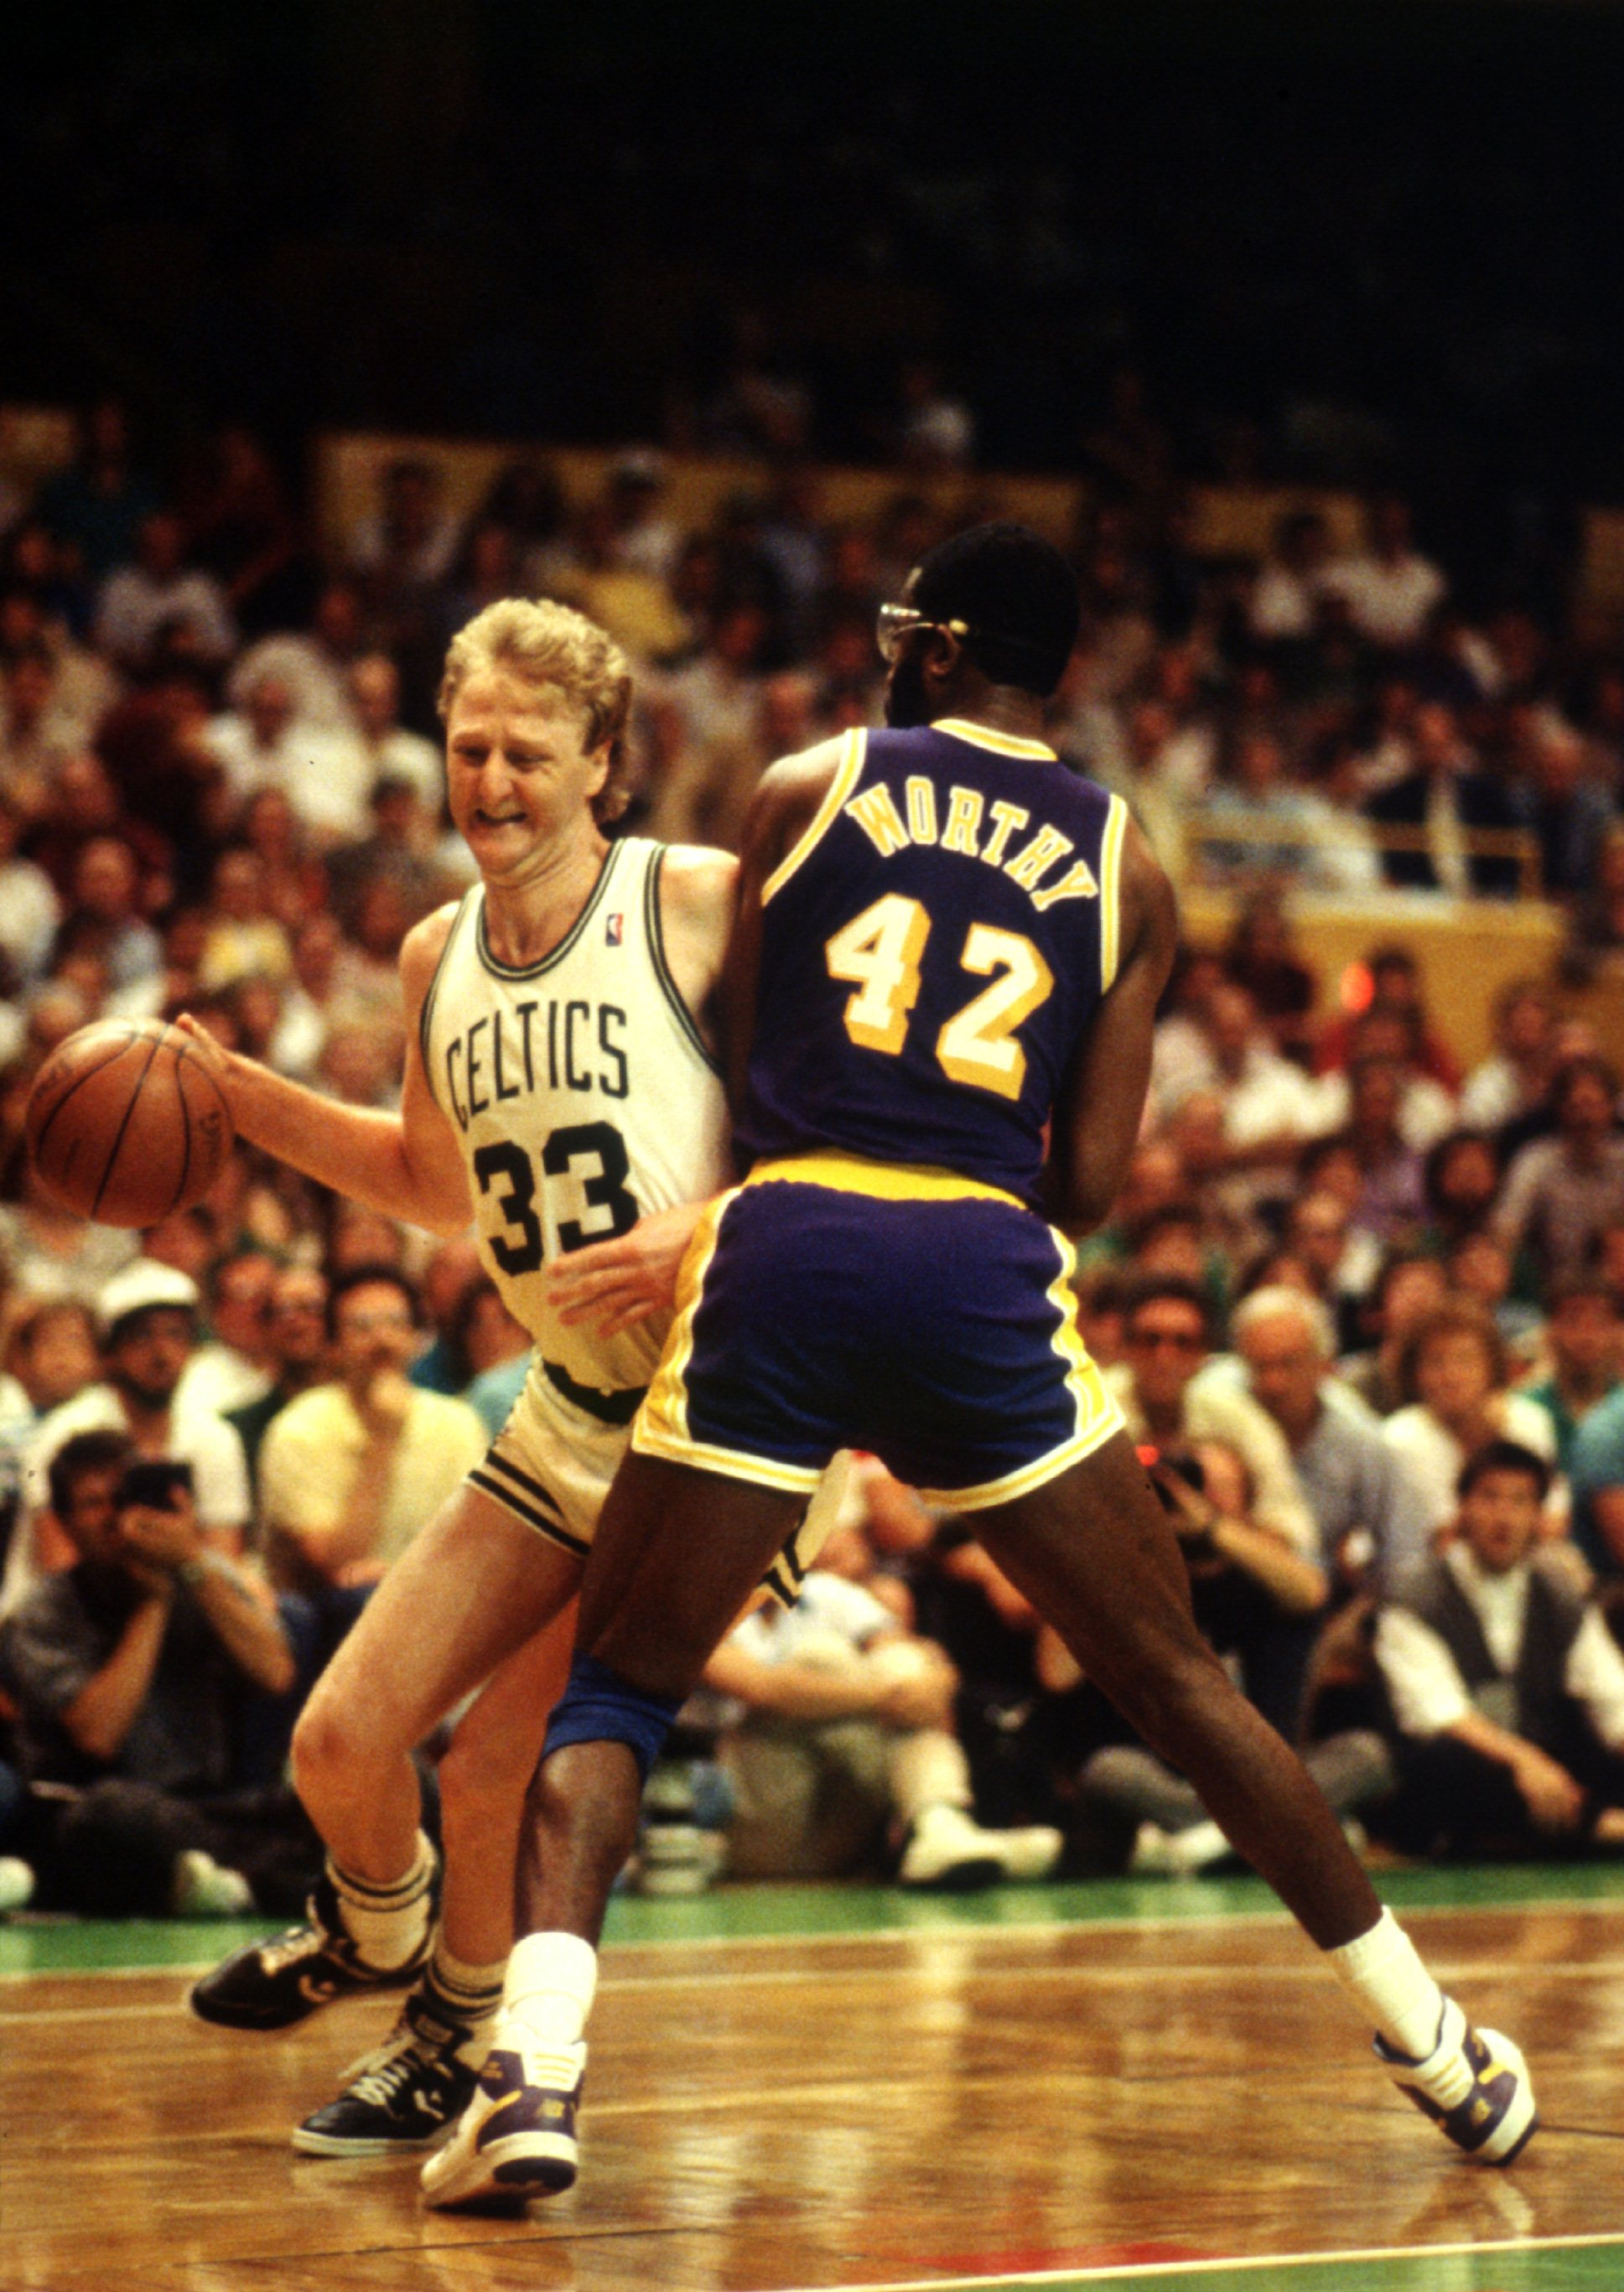 JUN 1987:  BOSTON FORWARD LARRY BIRD TRIES TO DRIVE AROUND LOS ANGELES FORWARD JAMES WORTHY DURING THE CELTICS GAME VERSUS THE LAKERS IN THE NBA FINALS AT THE BOSTON GARDEN IN  BOSTON, MASSACHUSETTS. Mandatory Credit: Jonathan Daniel/ALLSPORT